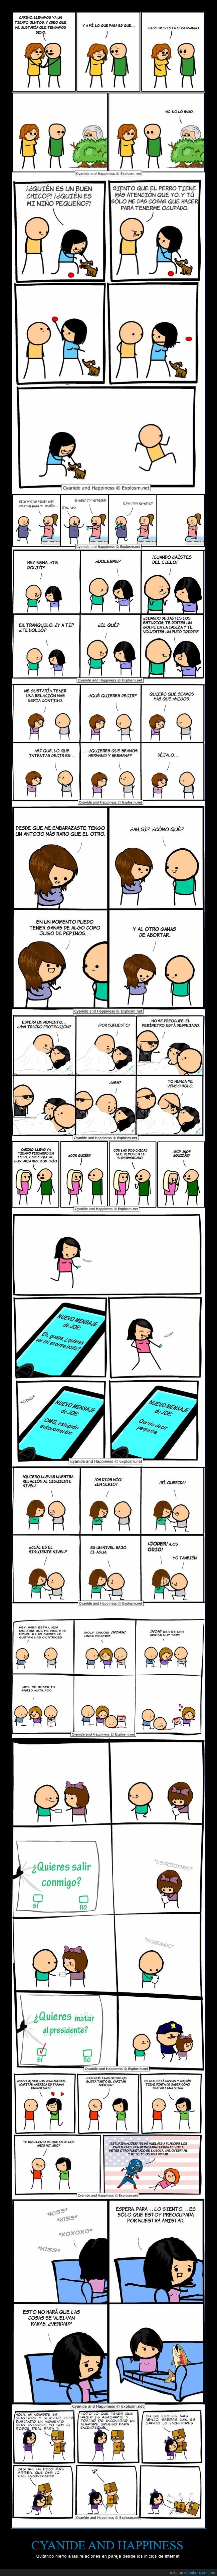 amor,cyanide and happiness,relaciones